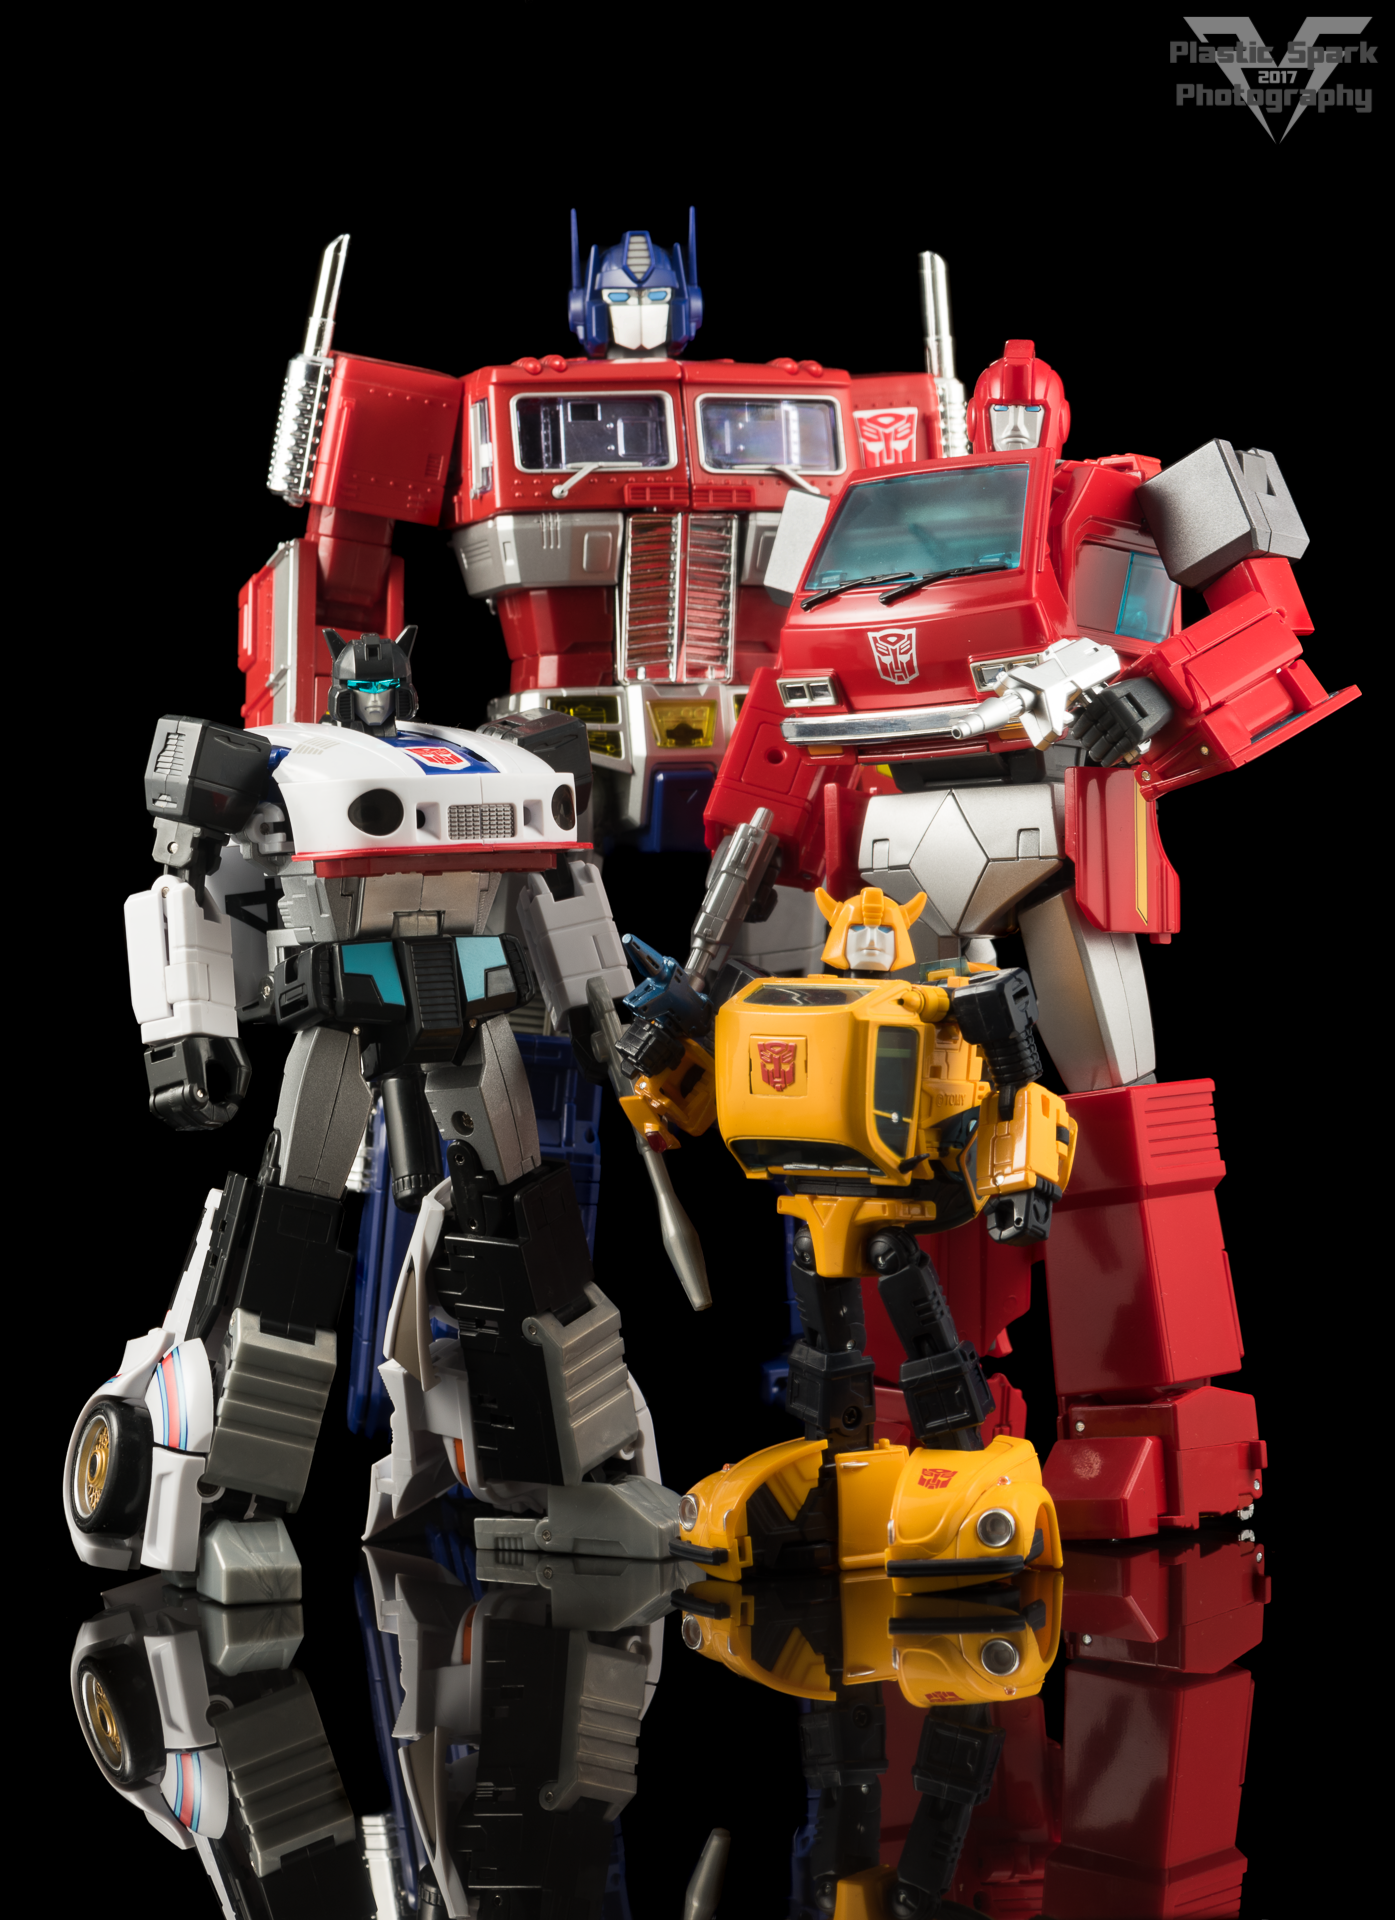 MakeToys-Re-Master-MTRM-09-Downbeat--(42-of-42).png